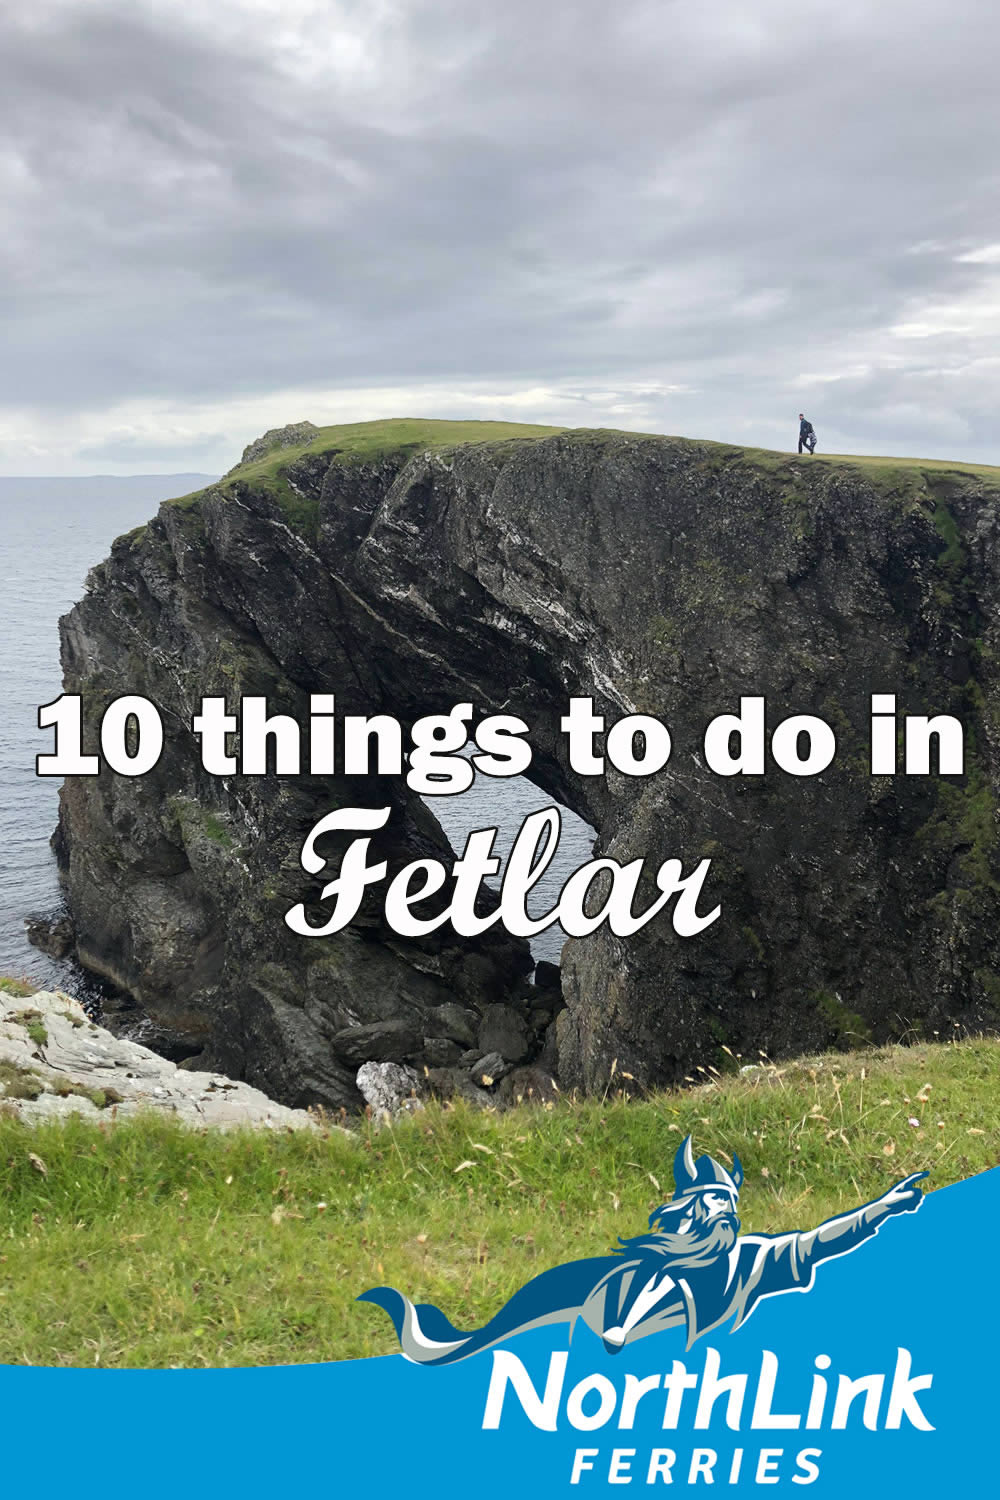 10 things to do in Fetlar